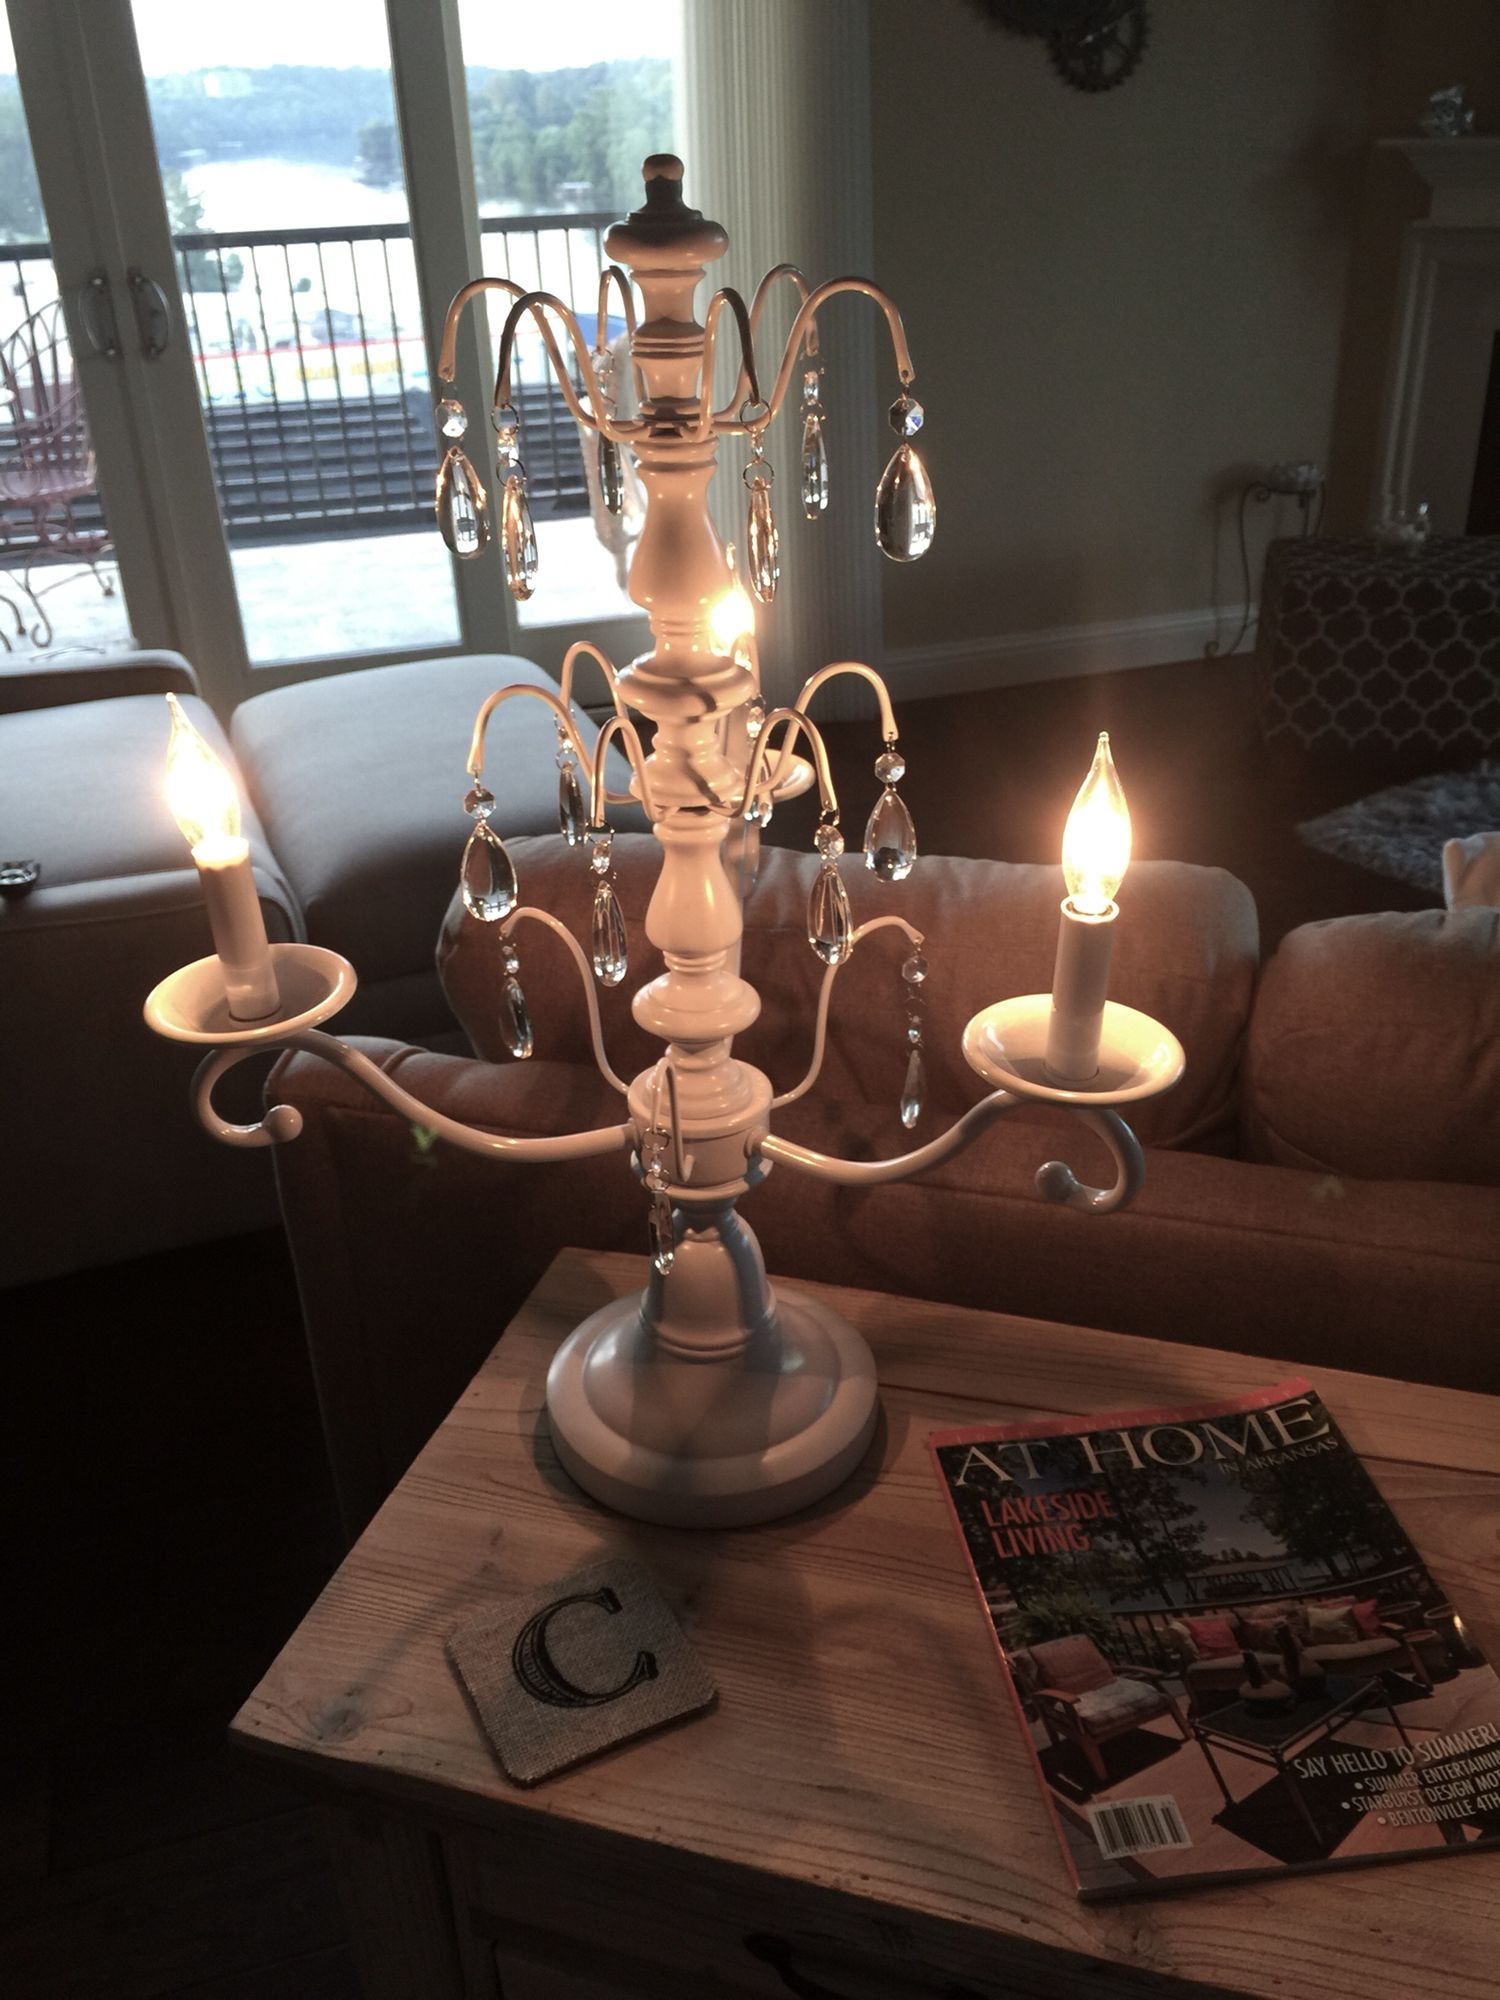 Fabulous New Lamp From At Home Decor Store Springfield Mo Condo